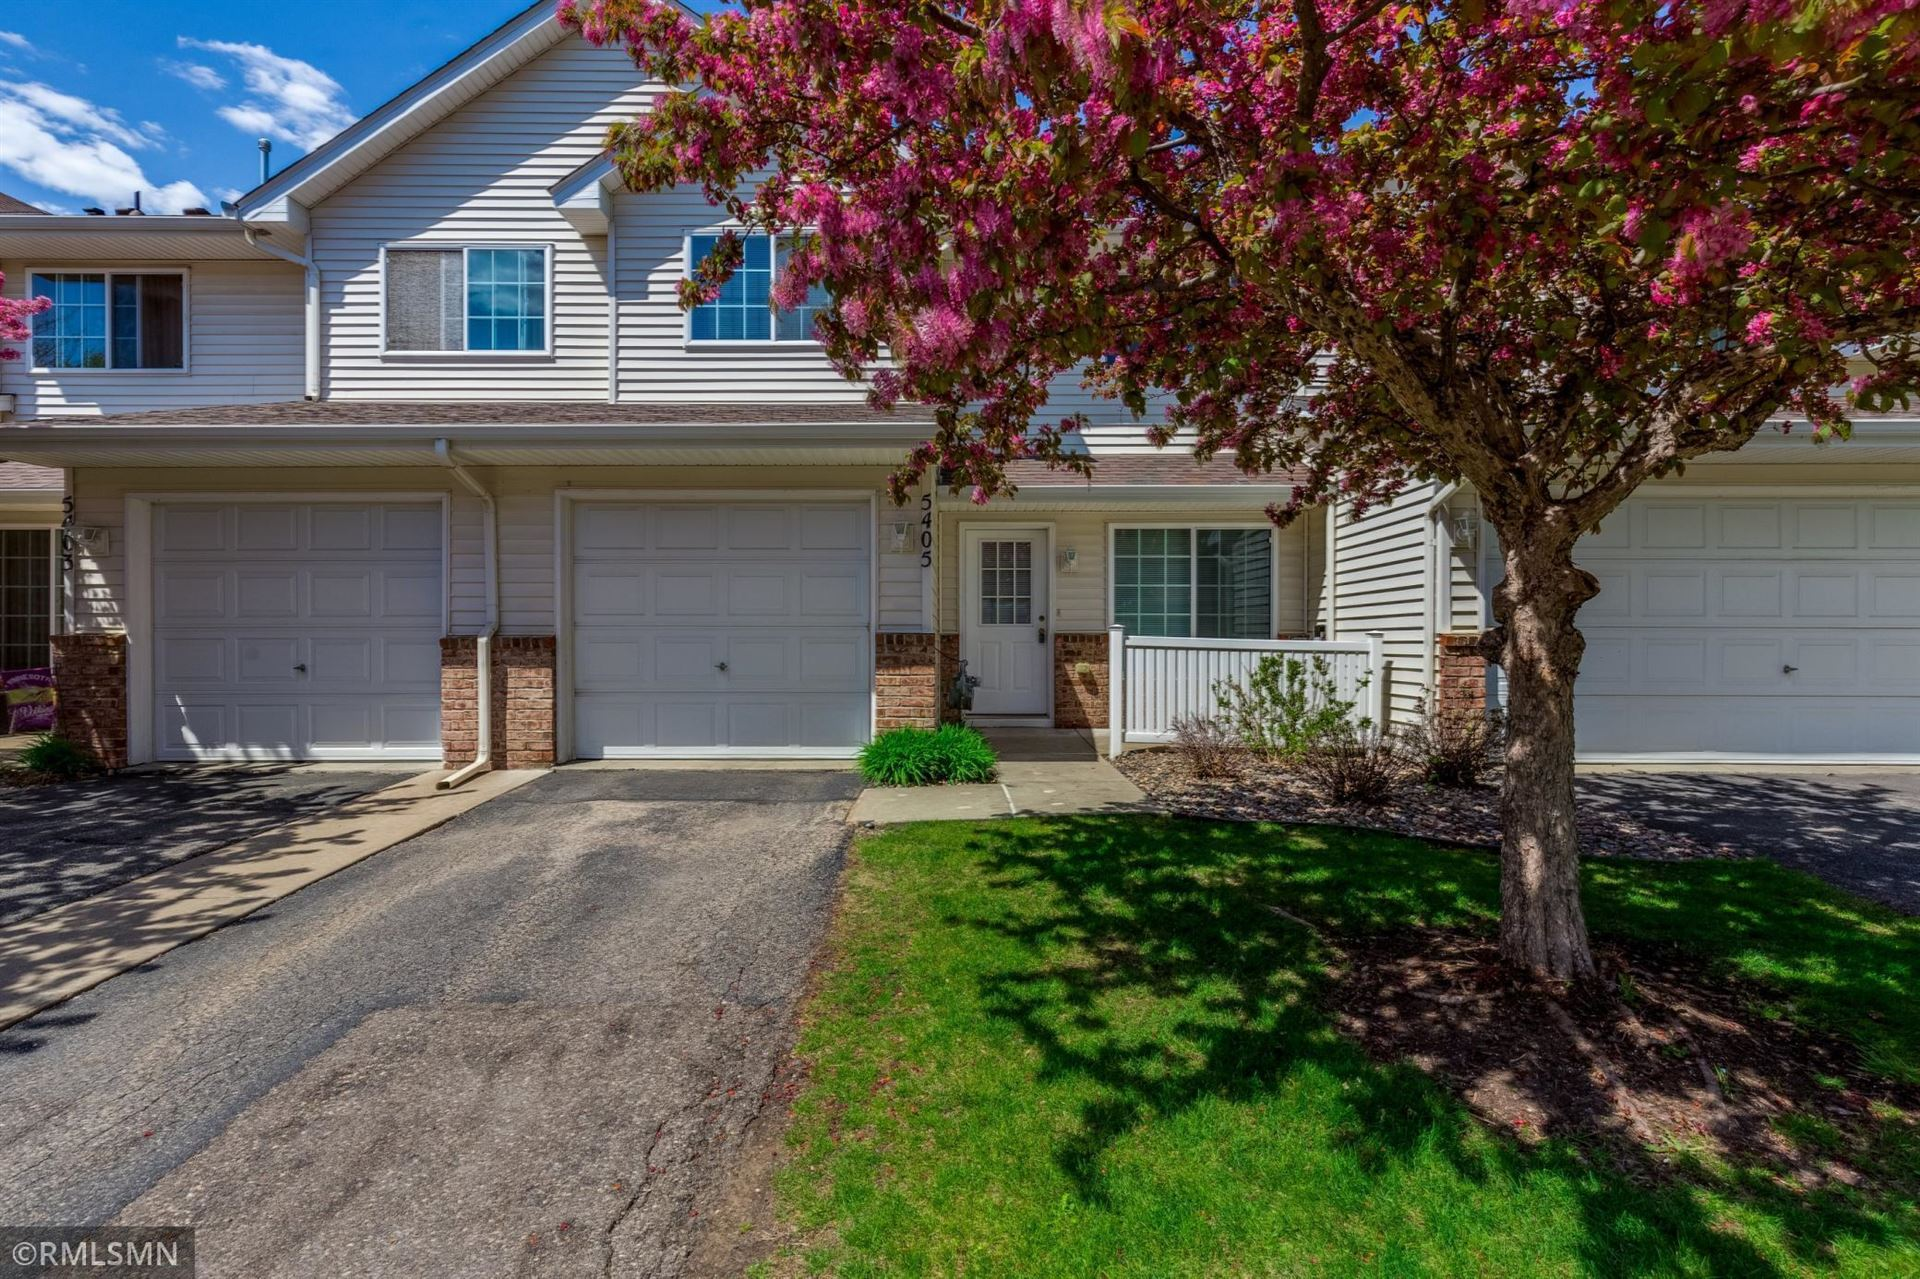 Photo of 5405 206th Street W #109, Farmington, MN 55024 (MLS # 5754784)